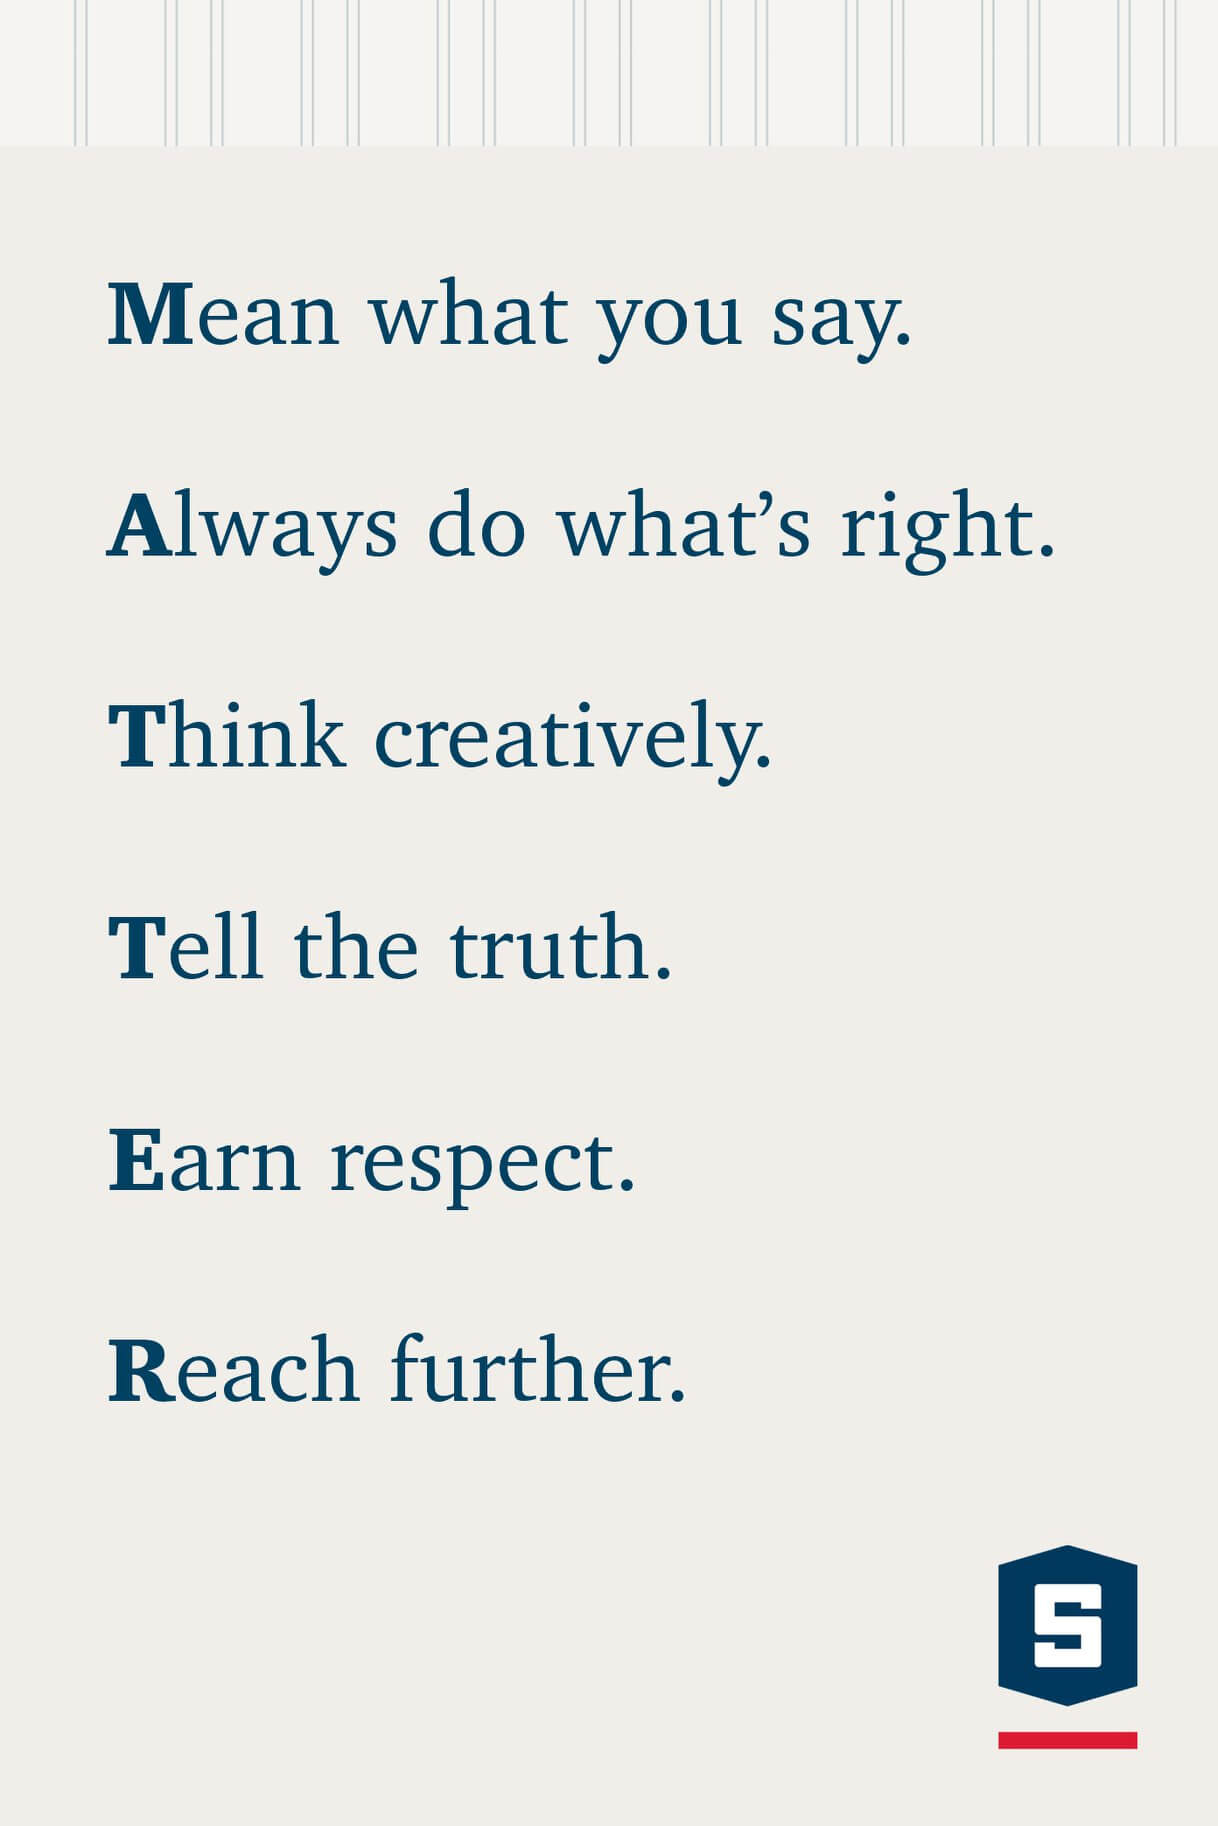 Mean What You Say, Always Do What's Right, Think Creatively, Tell The Truth, Earn Respect, Reach Further